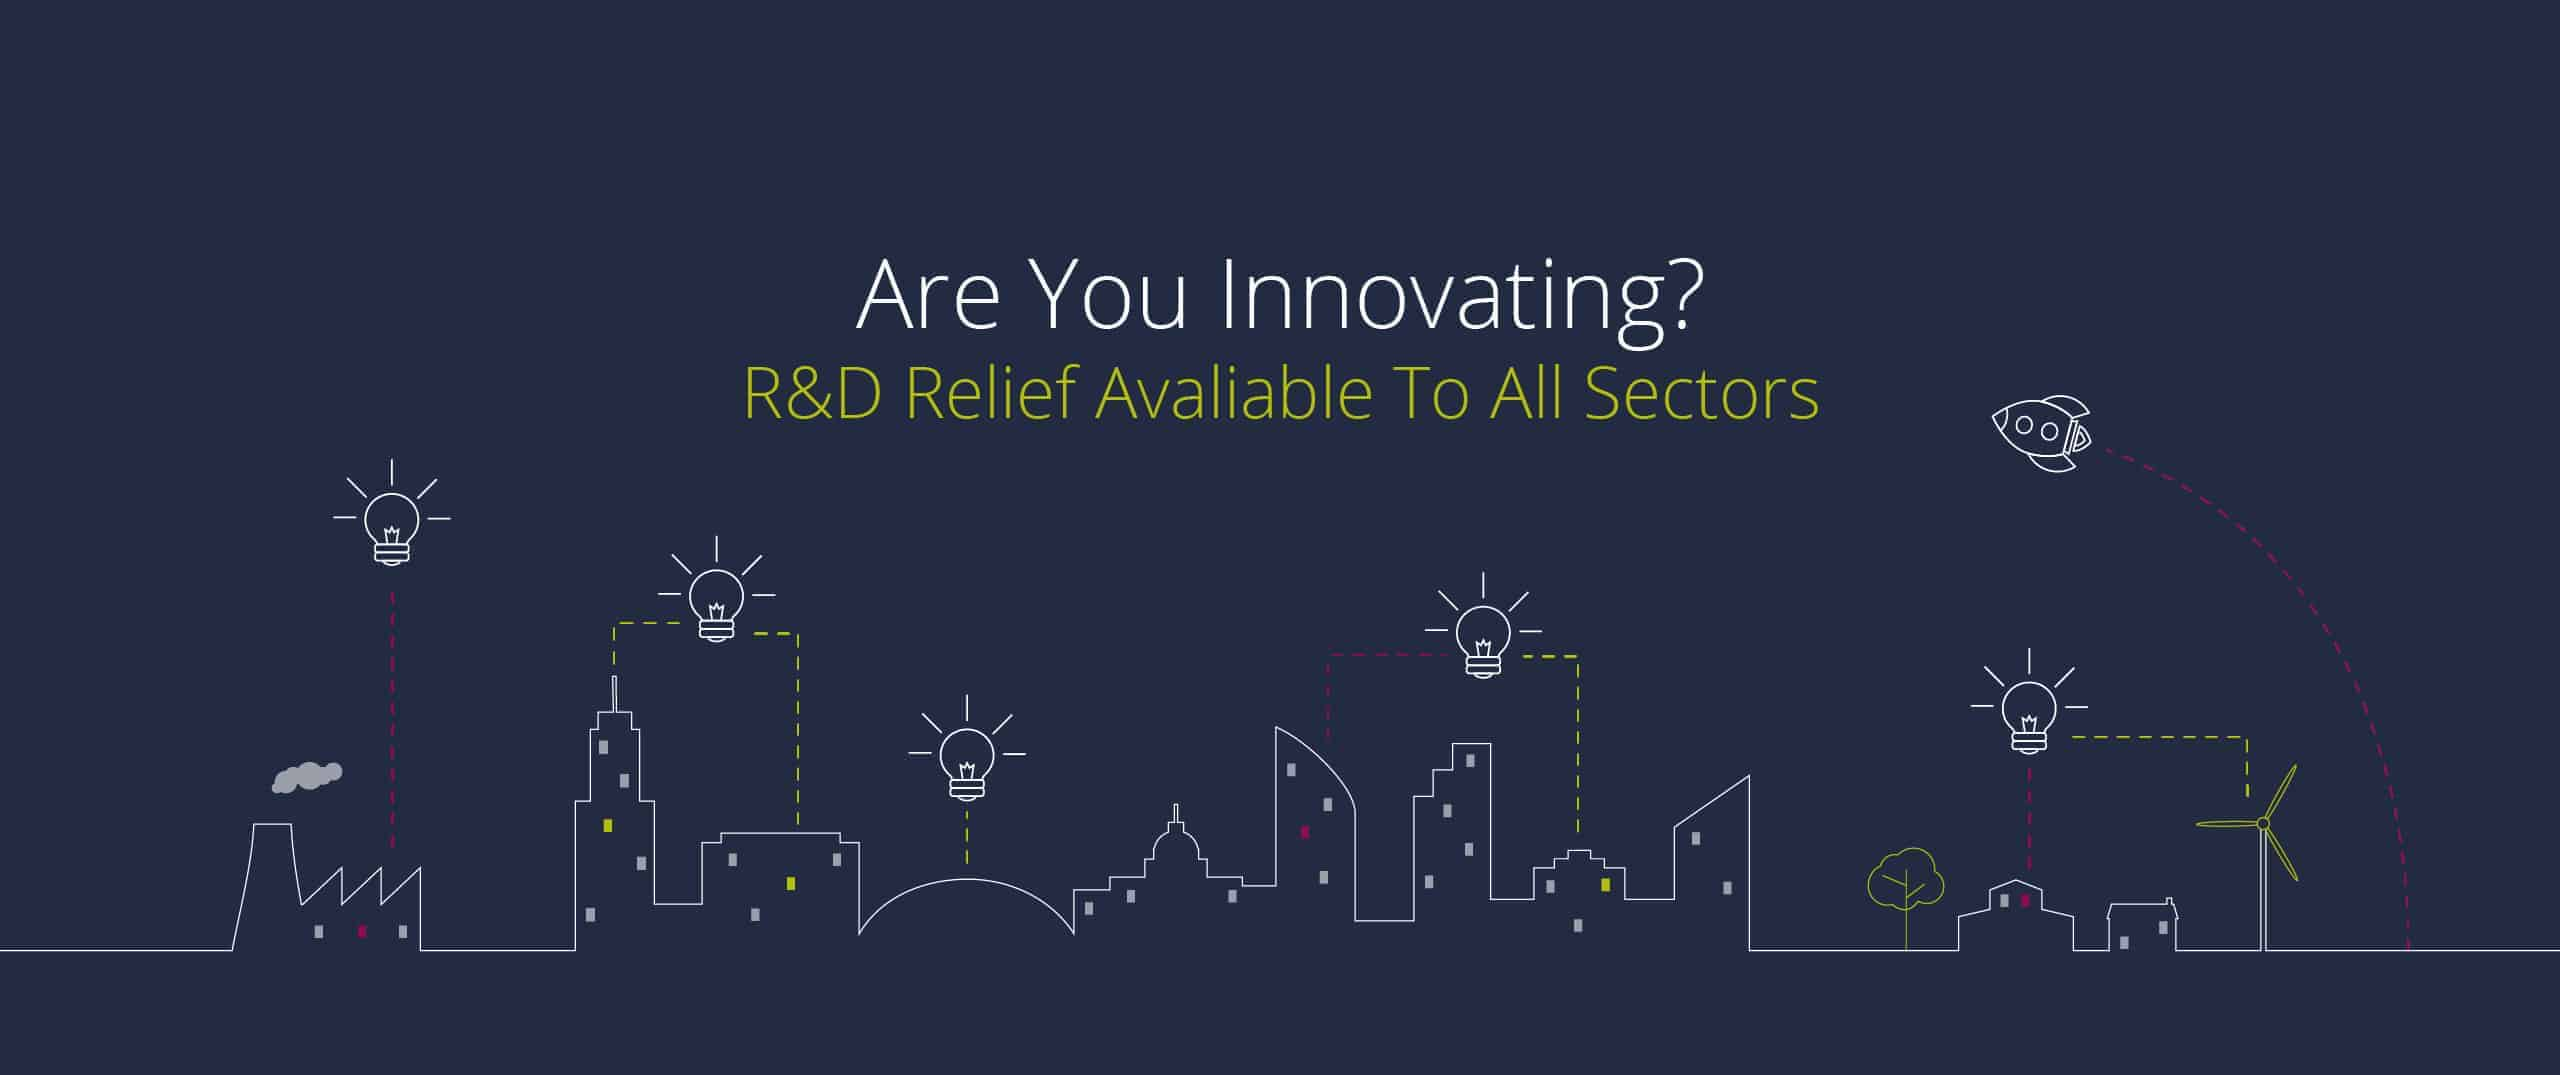 R&D Tax Credits For All